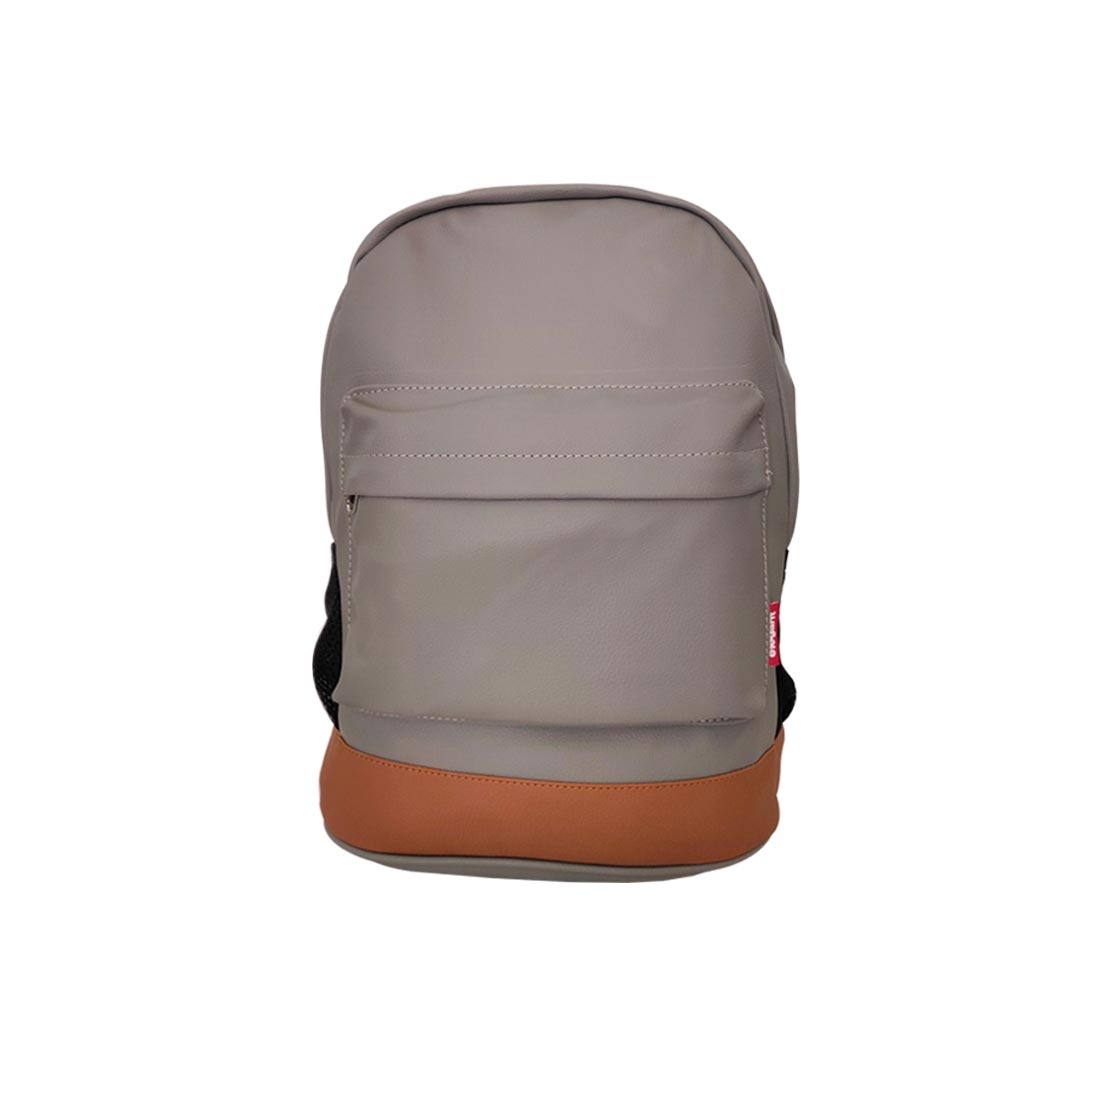 They have BACKPACKS of RoadGods as well which are Traditional backpacks can  be easily accessed by razor cutting them or through their unprotected  zippers. 0aae7b795bd68